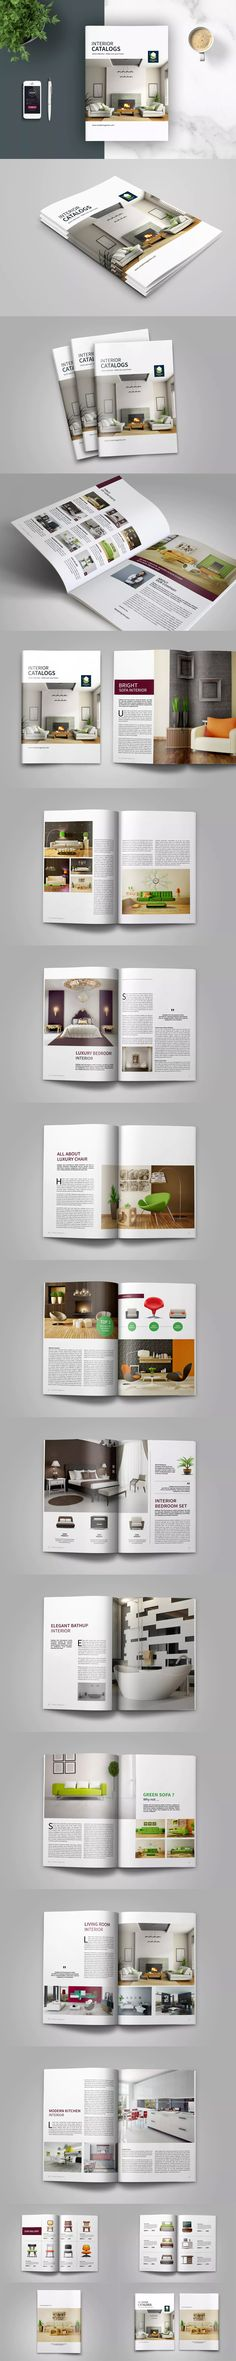 Interior Brochure / Catalogs / Magazine Template InDesign INDD - A4 and US Letter Size